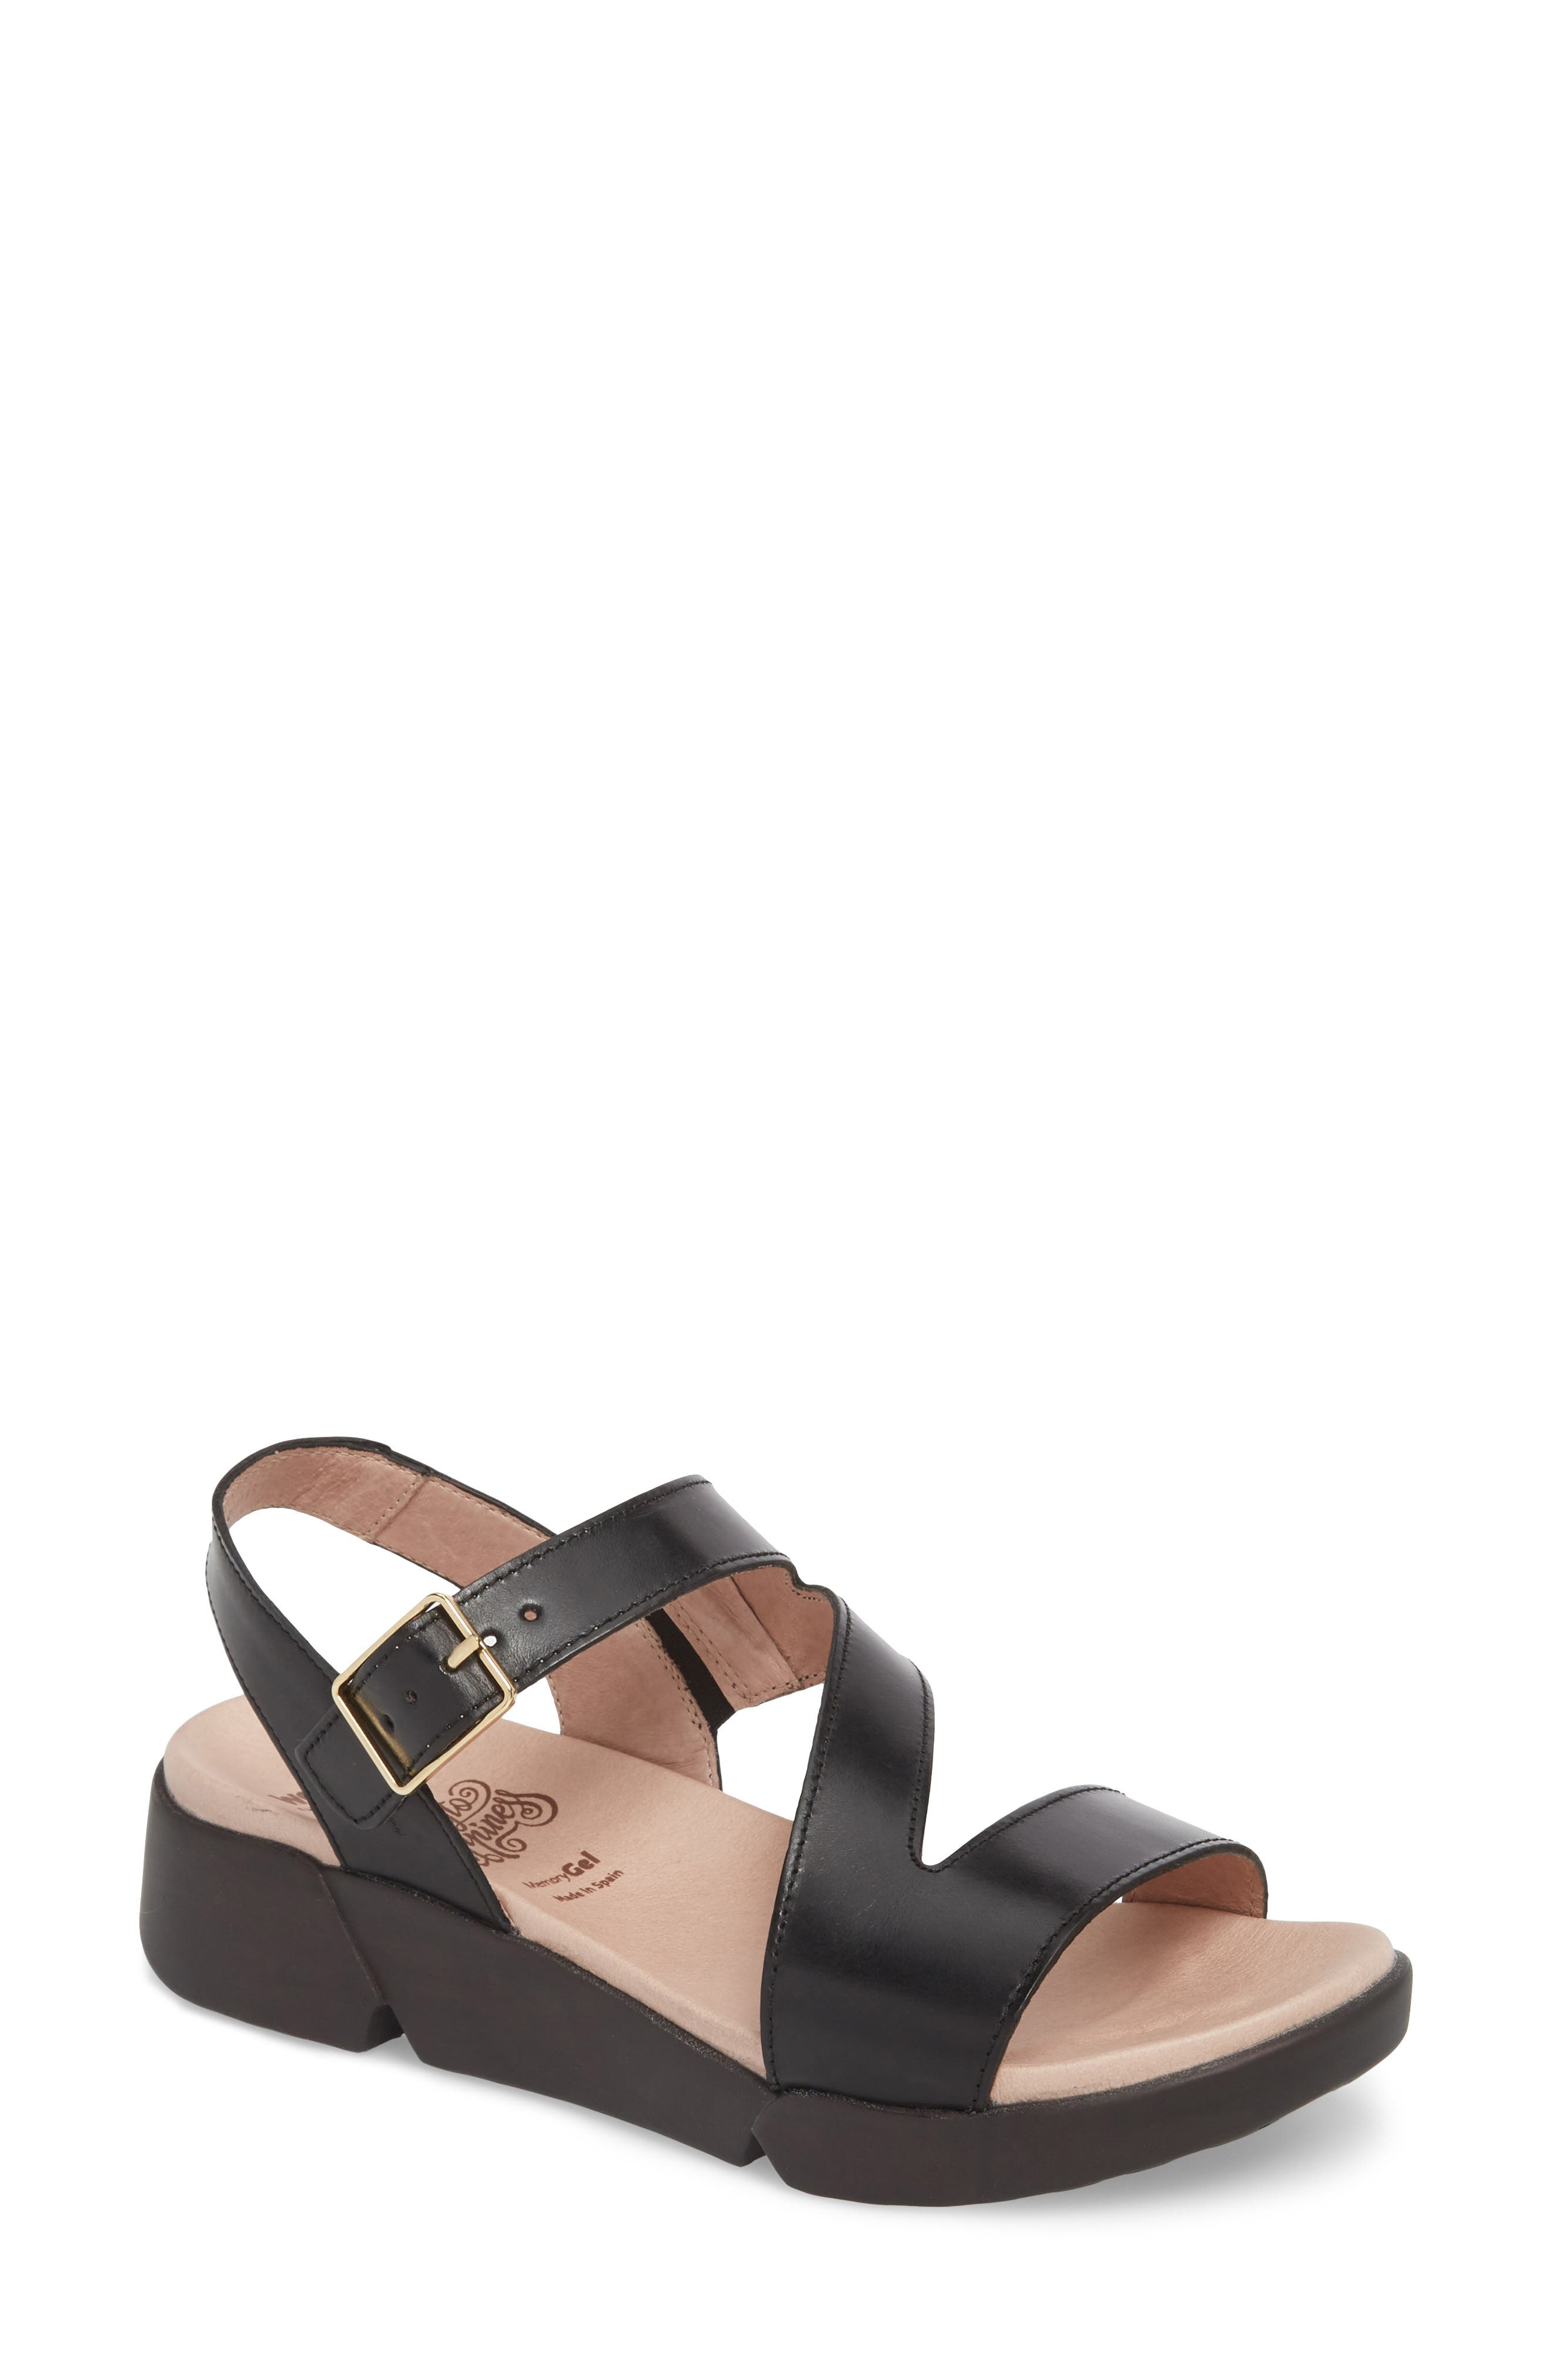 Wonders Platform Wedge Sandal